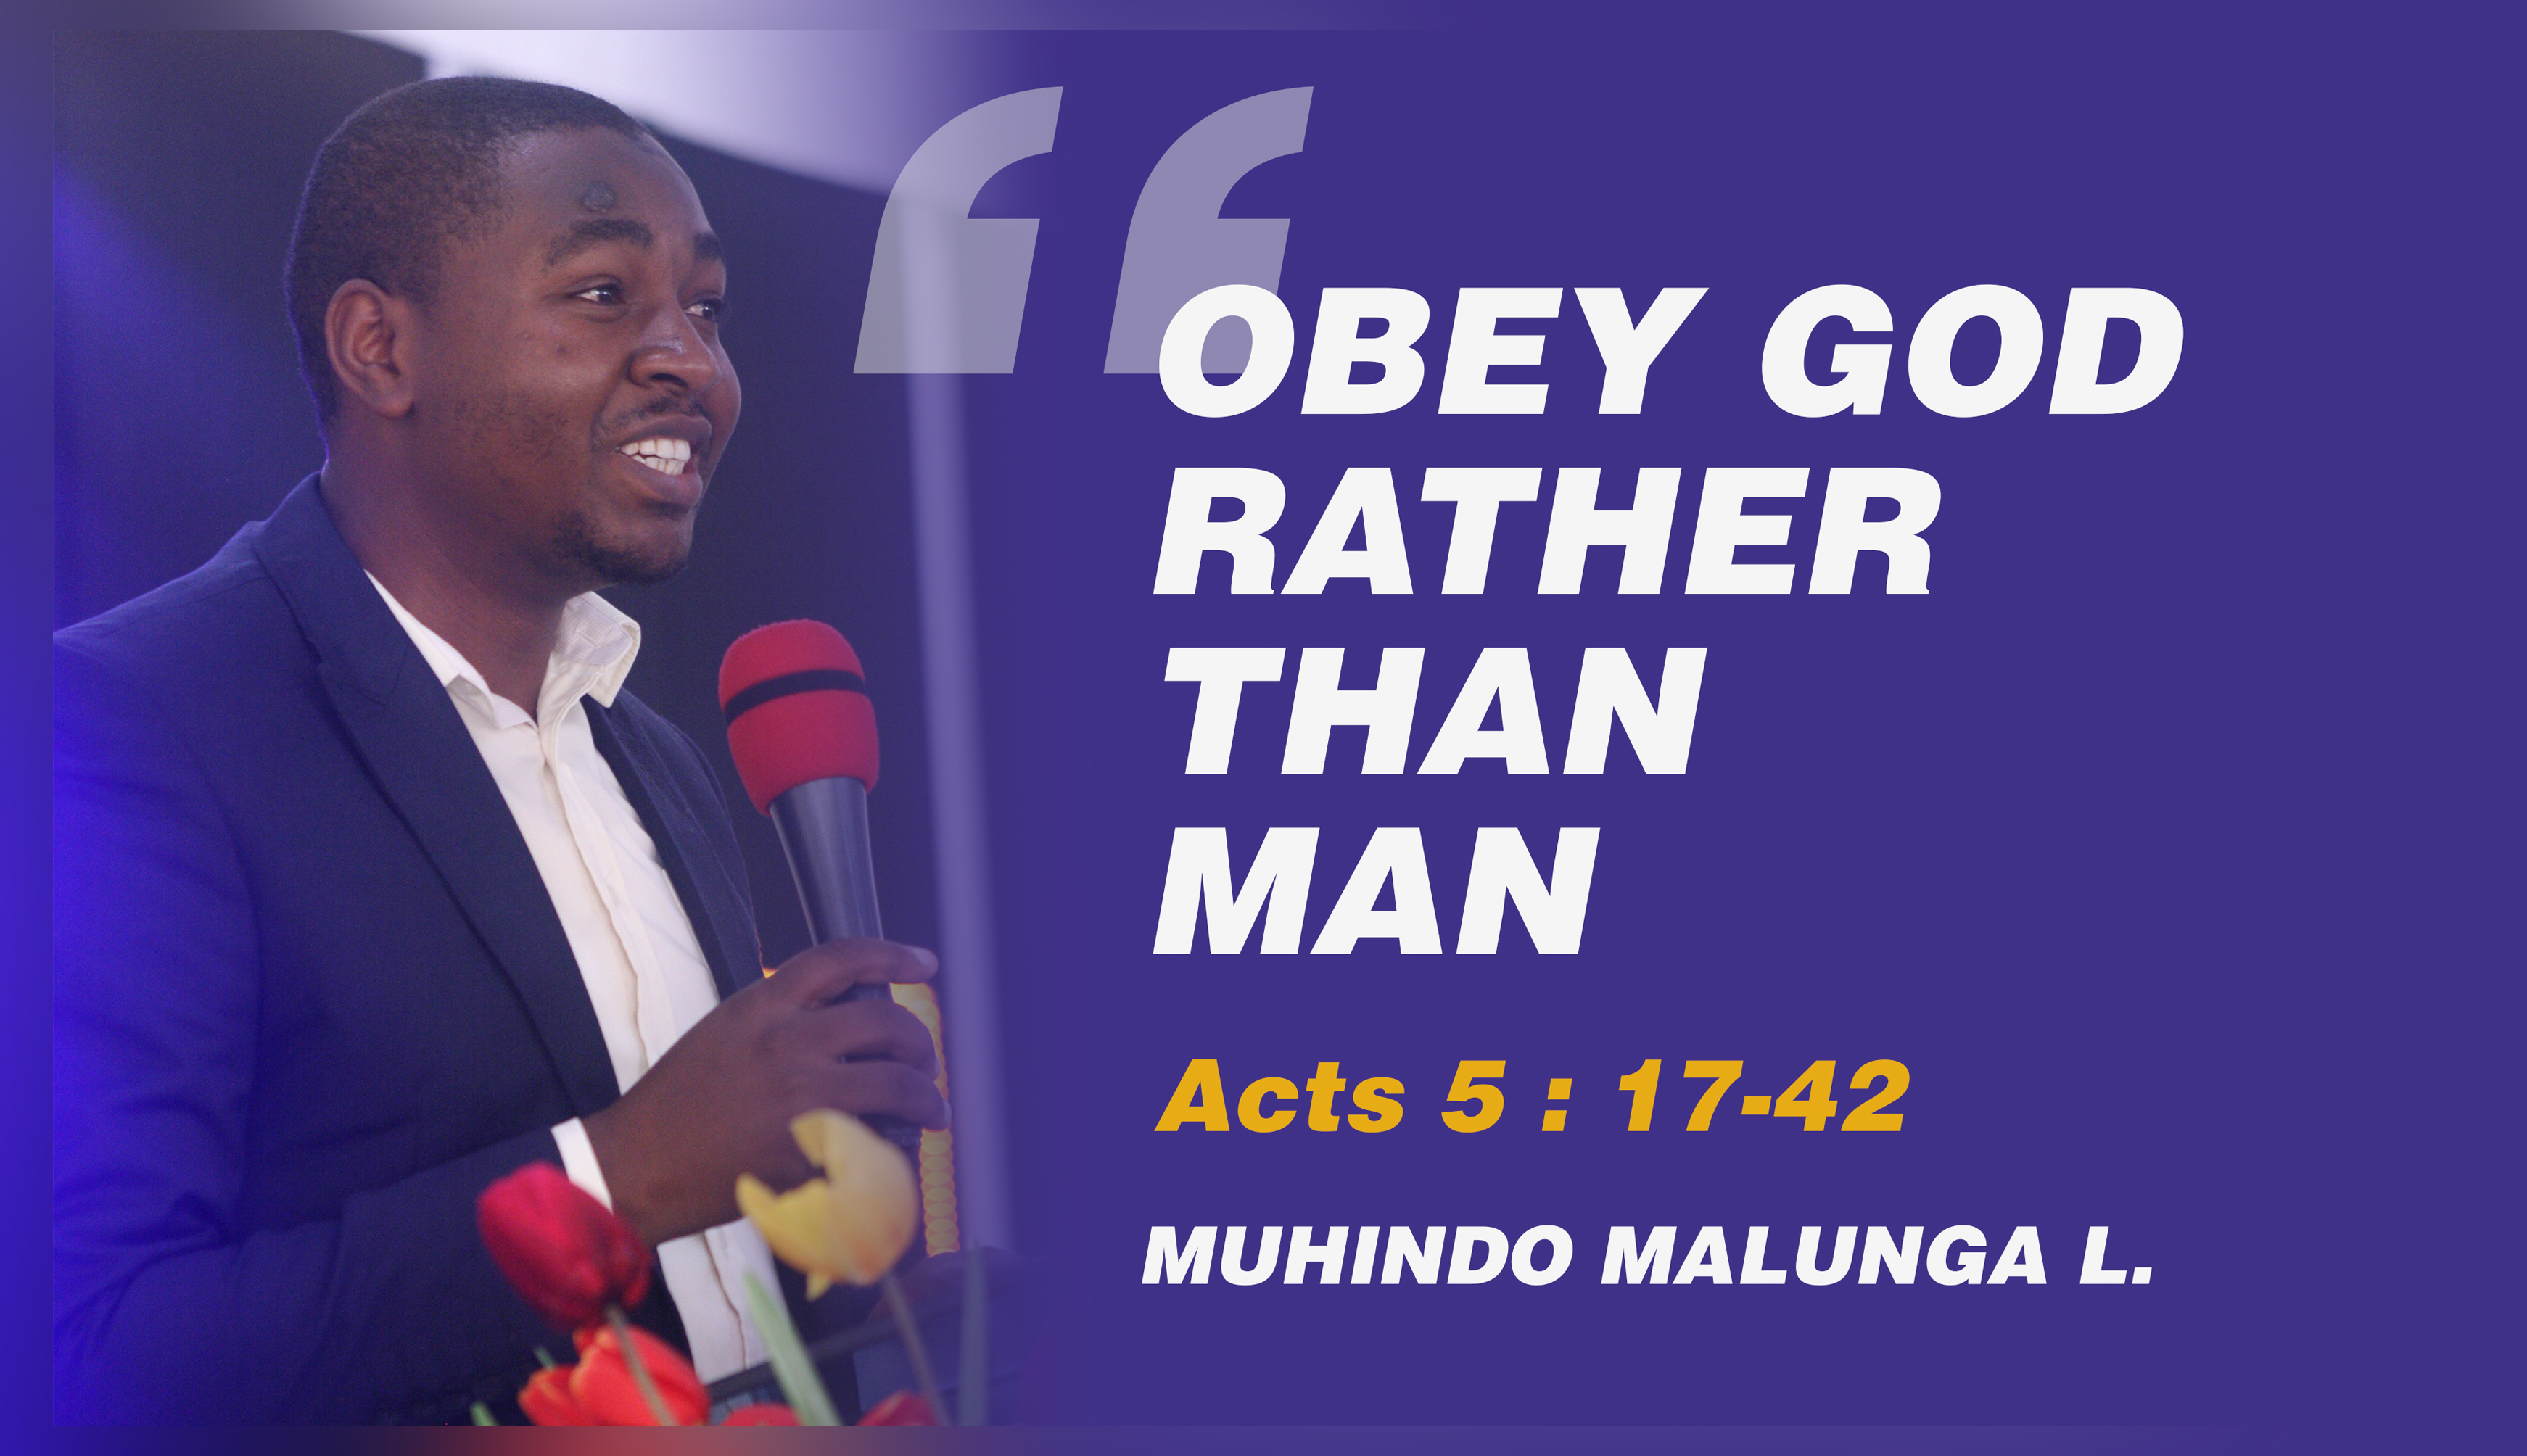 OBEY GOD RATHER THAN MAN